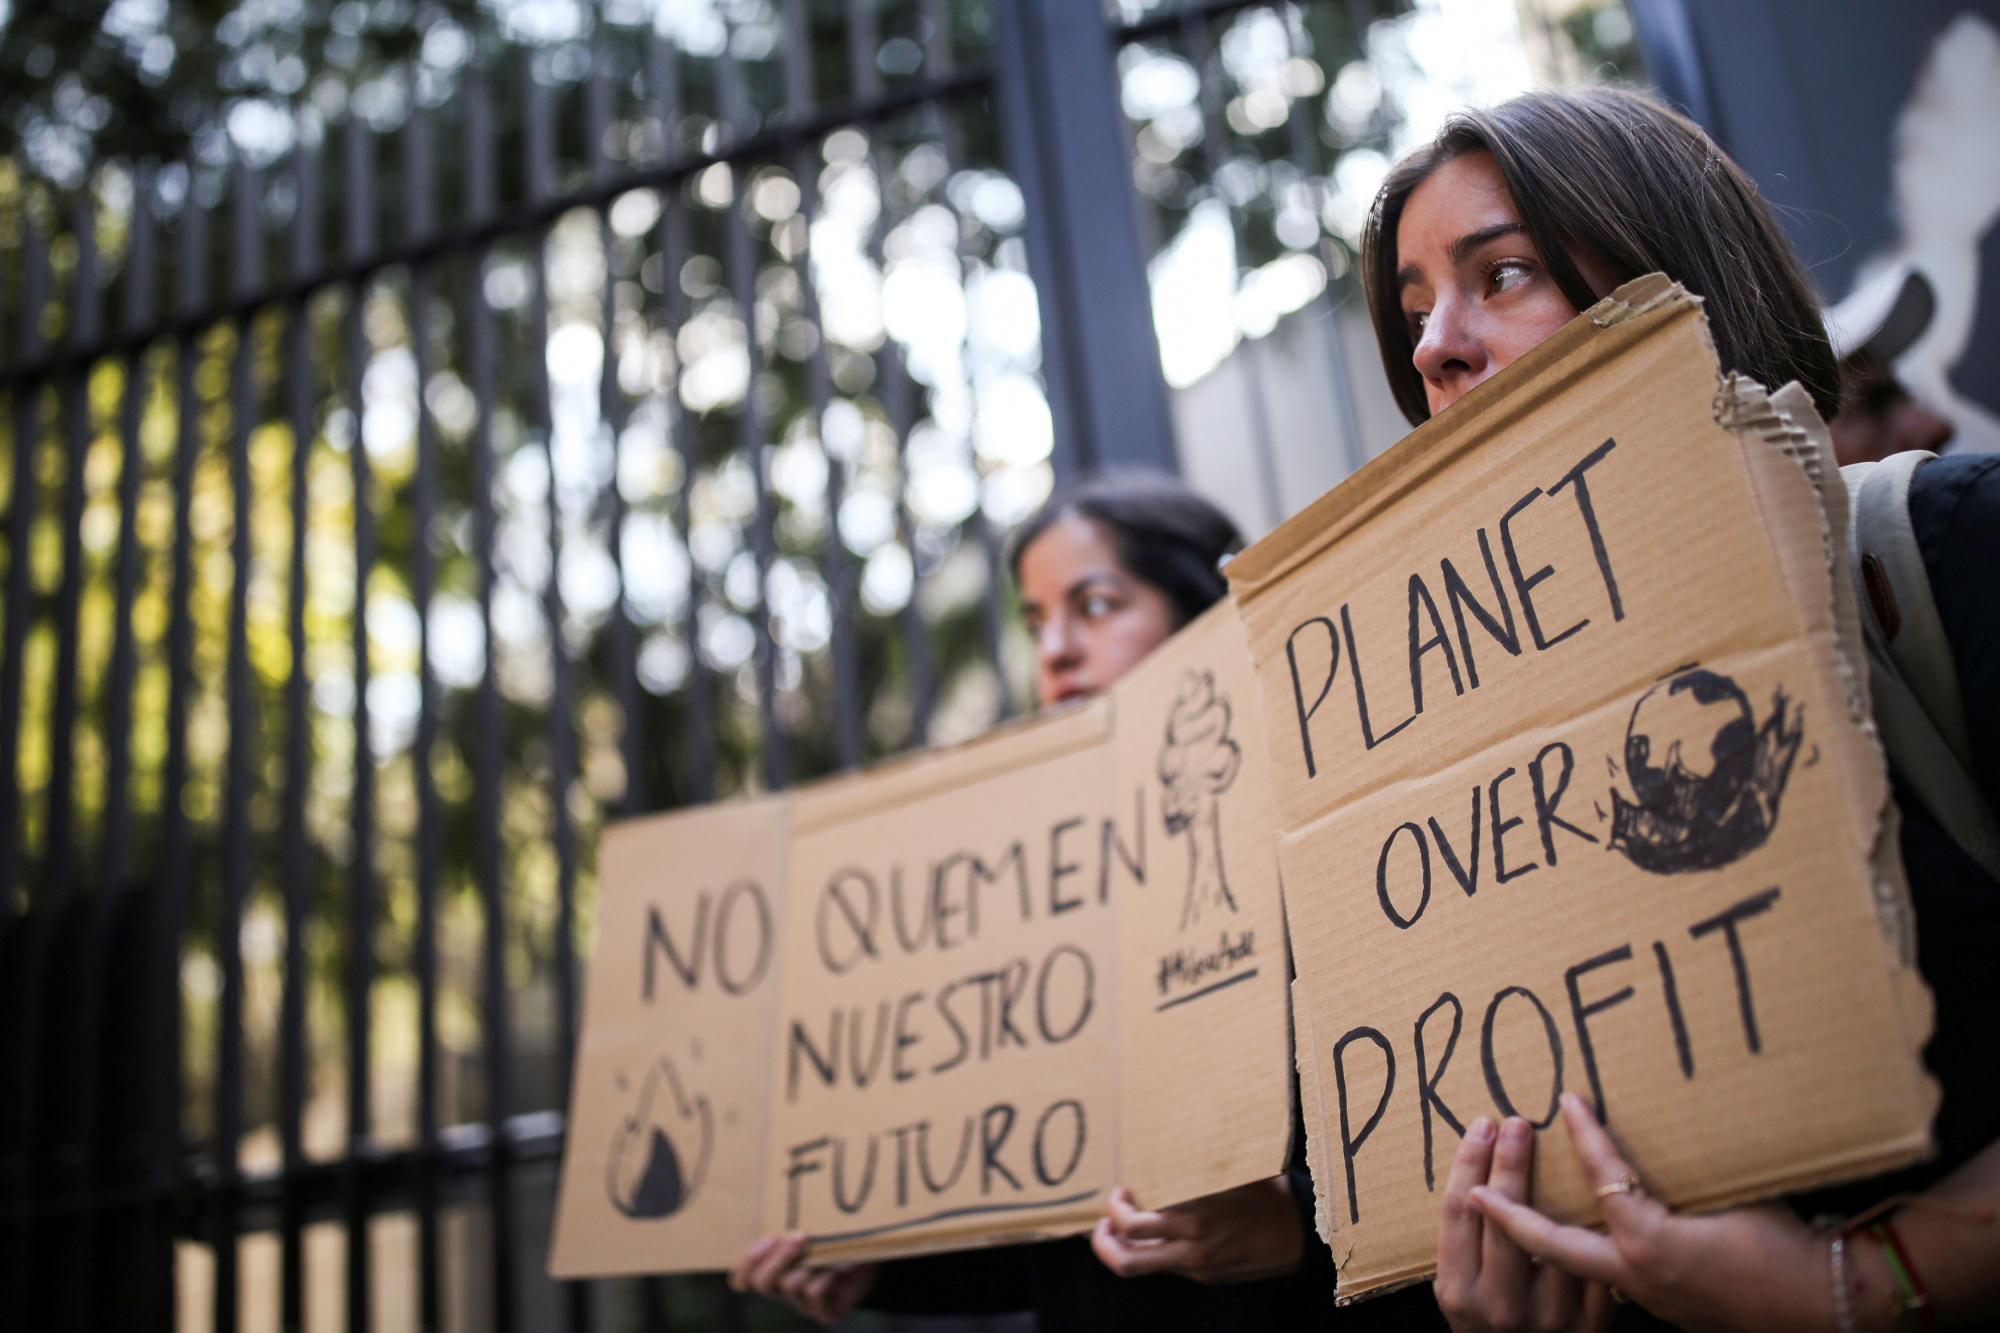 Activists hold signs in a protest over Australia's bush fire crisis, outside the Australian Embassy in Mexico City on Friday. | REUTERS